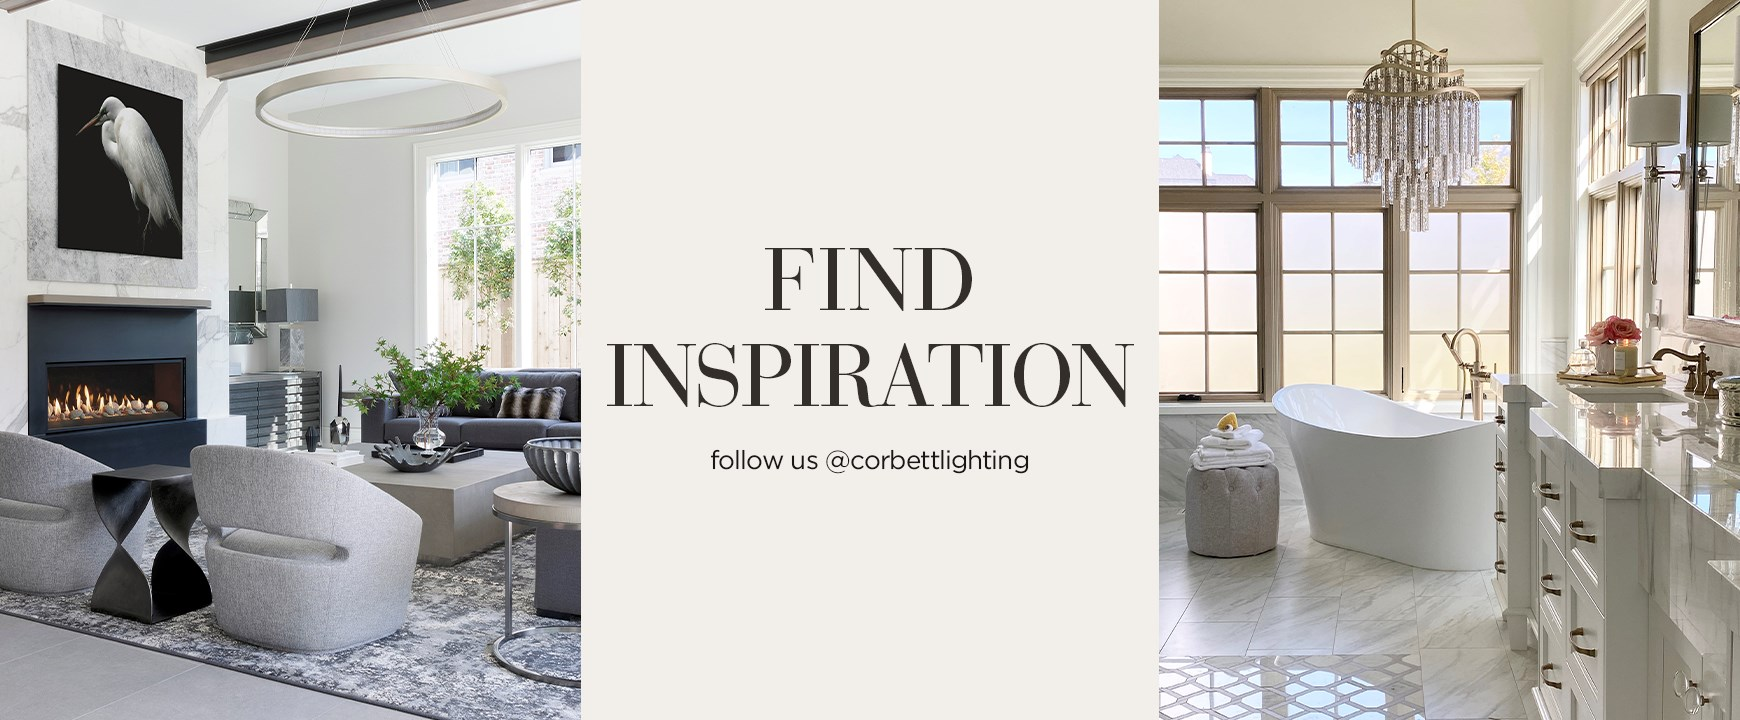 follow us @corbettlighting